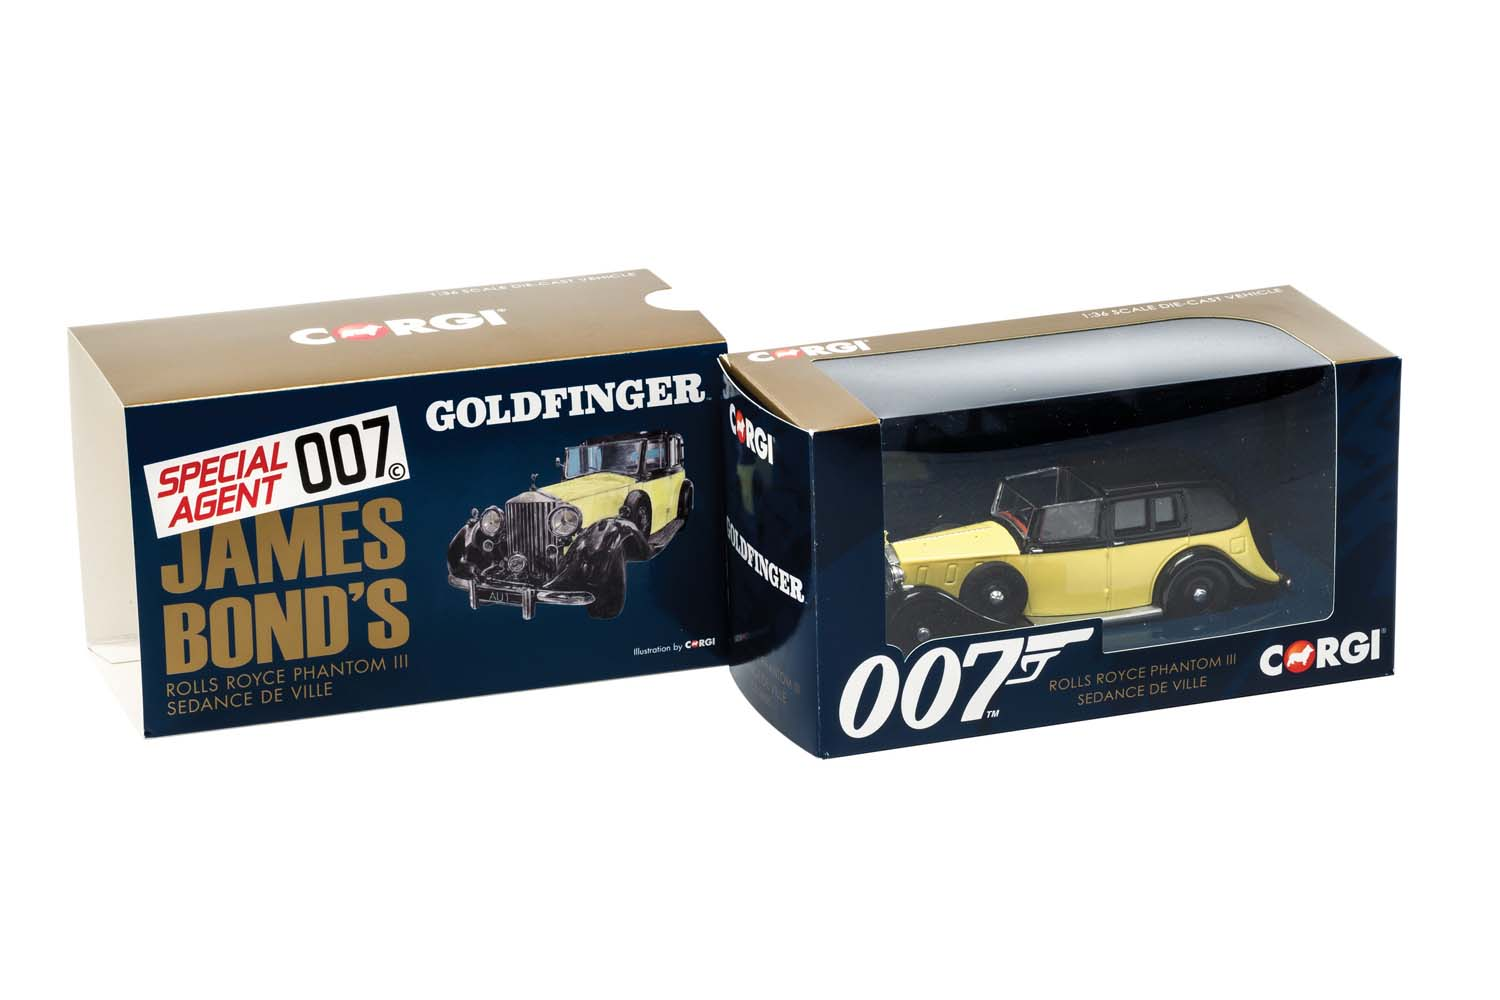 007 James Bond - Corgi Rolls Royce Sedance de Ville Goldfinger die cast